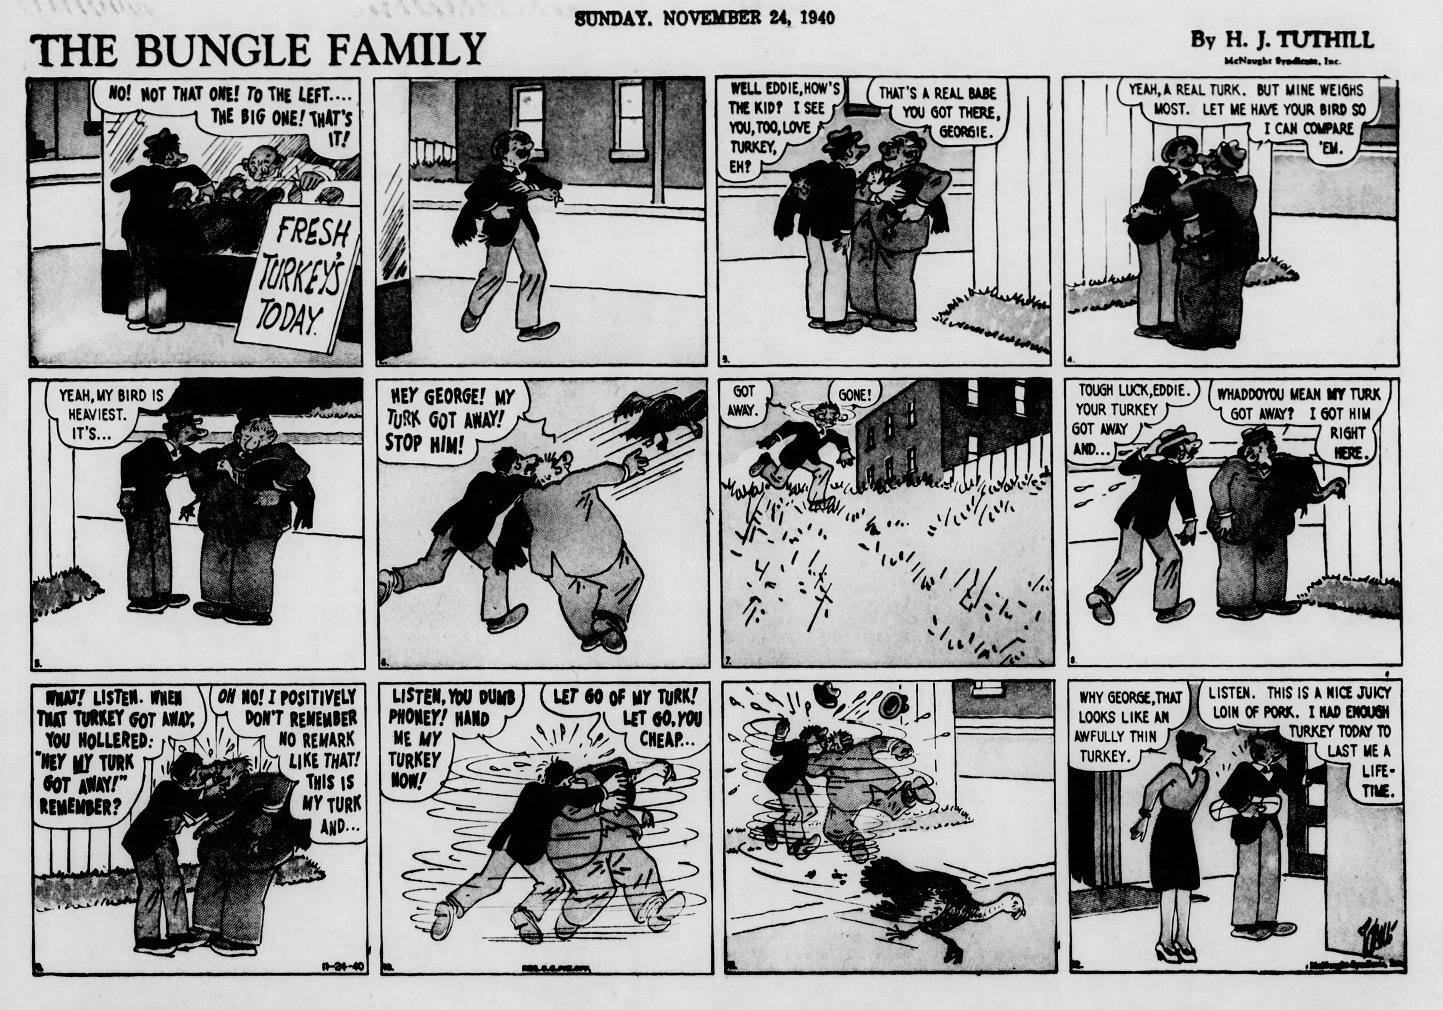 The_Brooklyn_Daily_Eagle_Sun__Nov_24__1940_(7).jpg